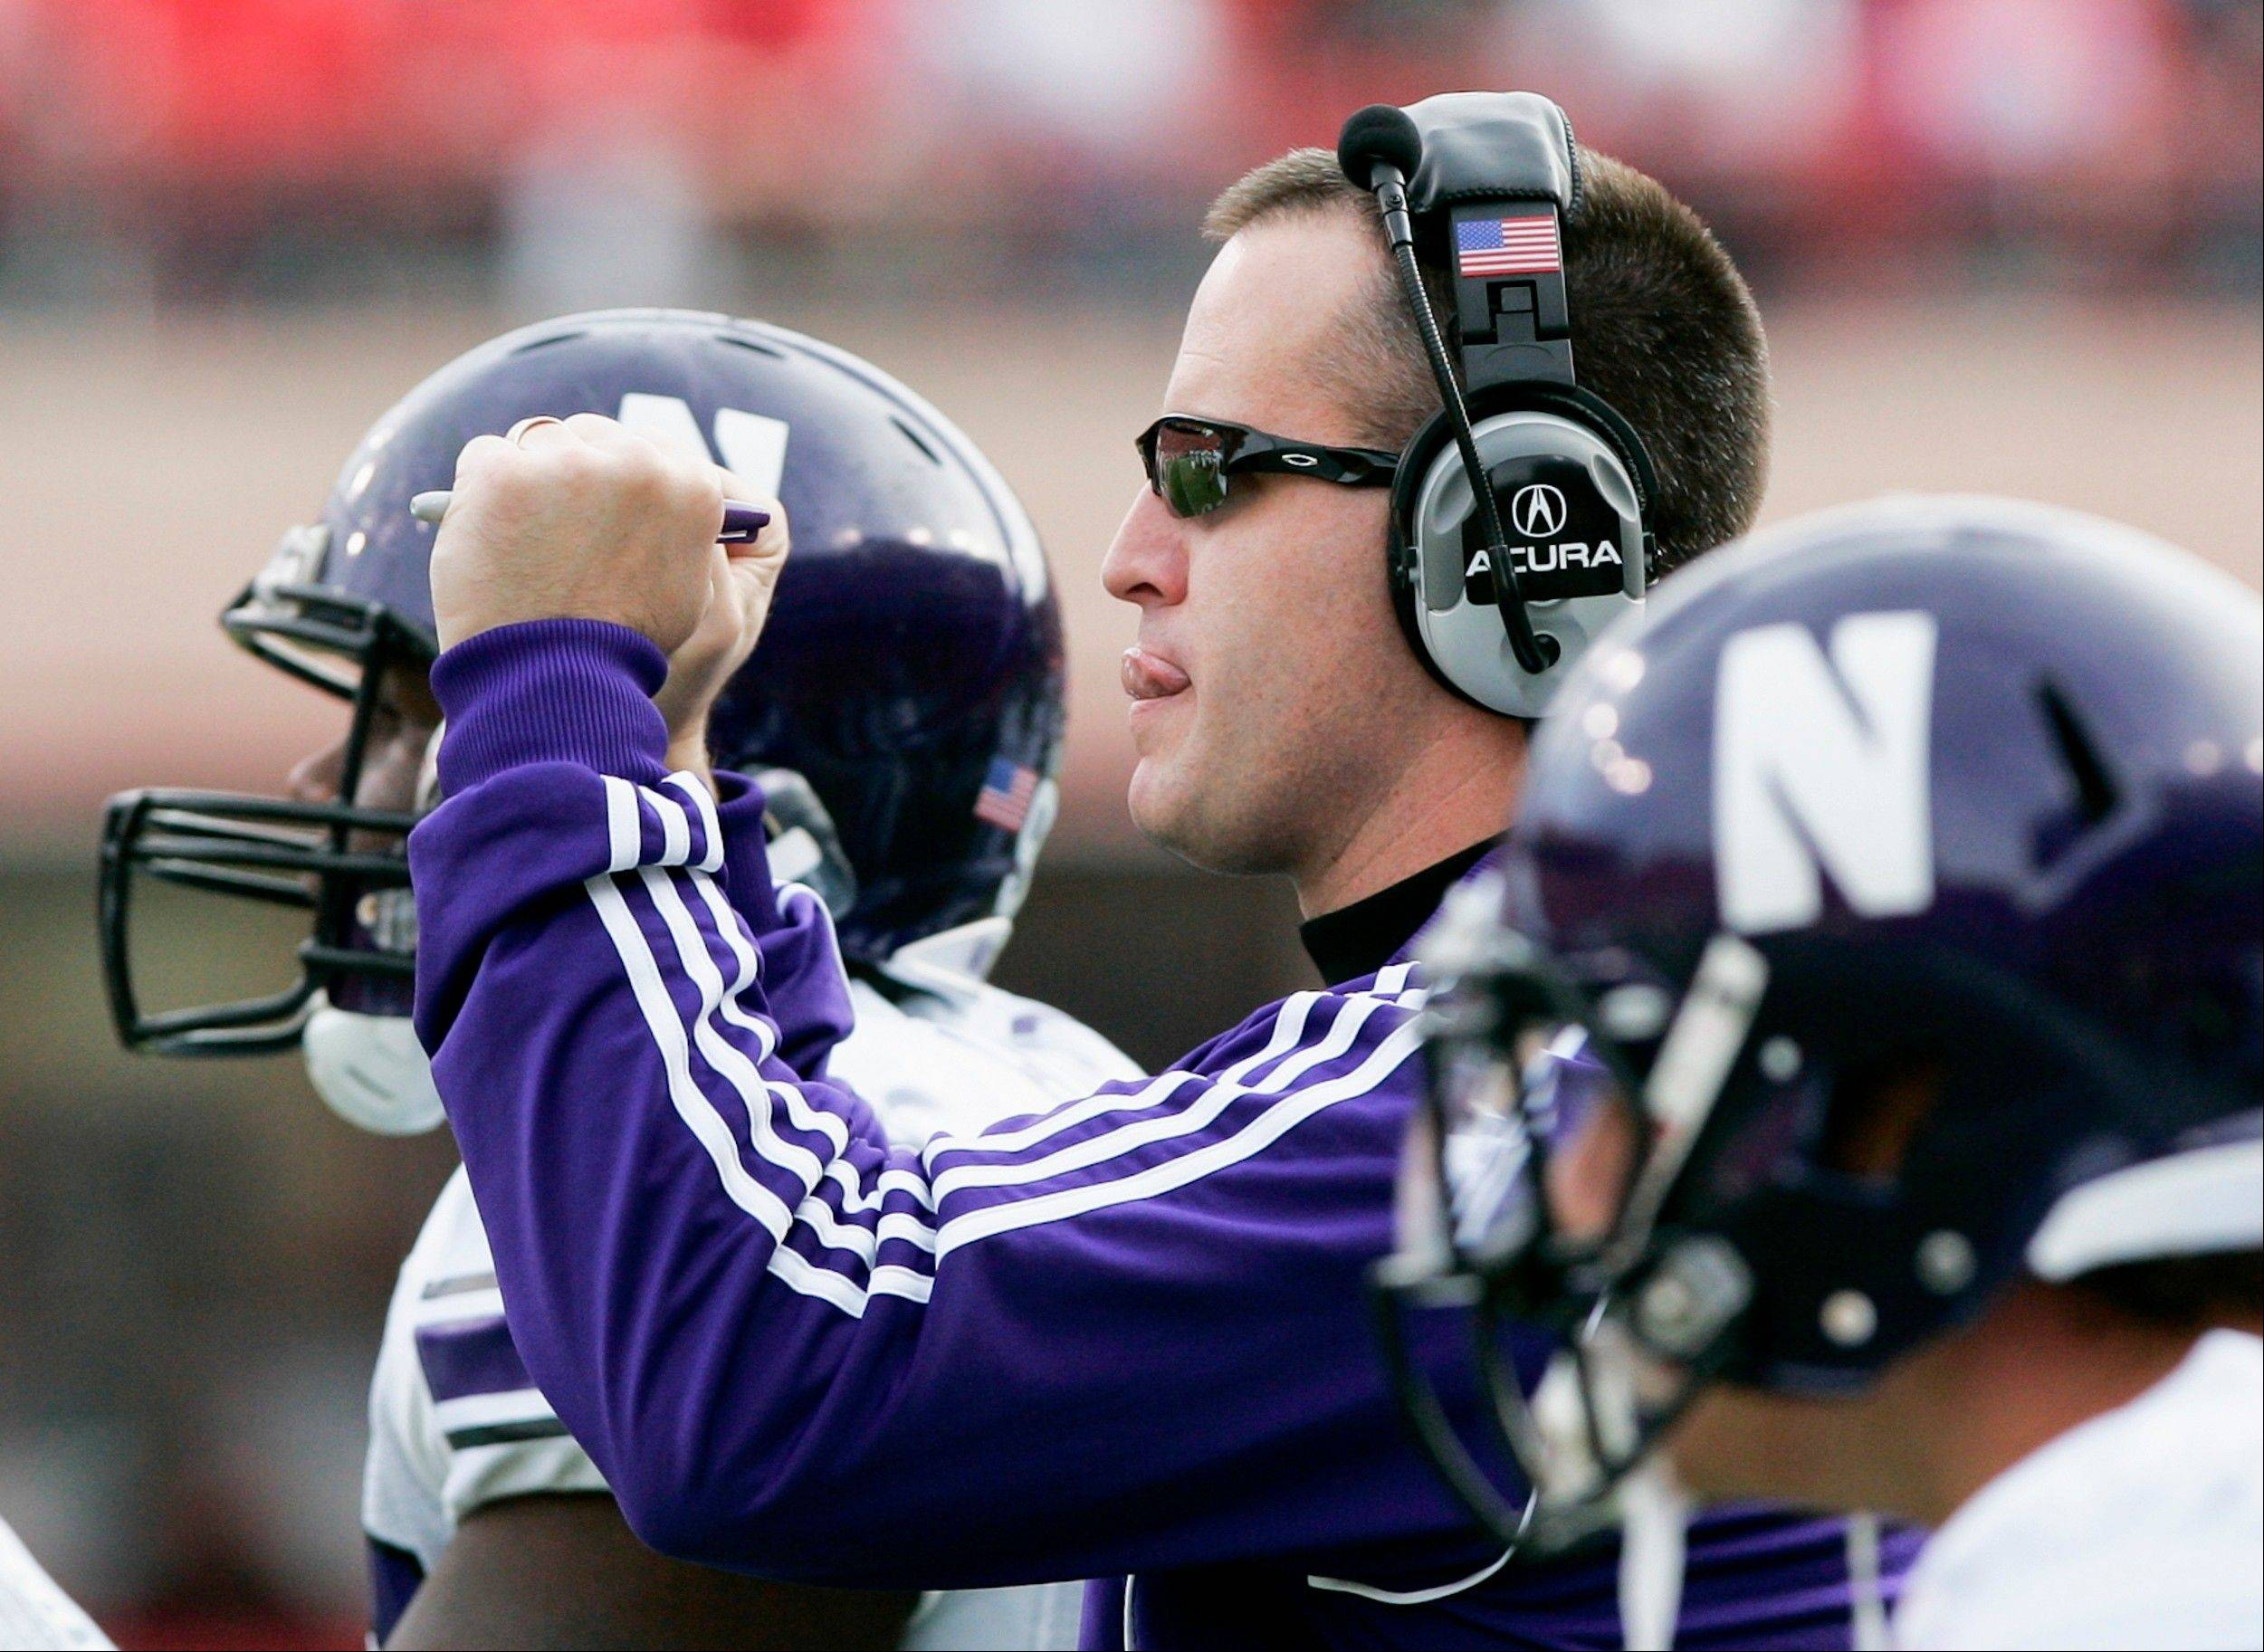 Northwestern head football coach Pat Fitzgerald's offense this season will open with three starters from suburban teams: Fremd, Montini and Wheaton Warrenville South.